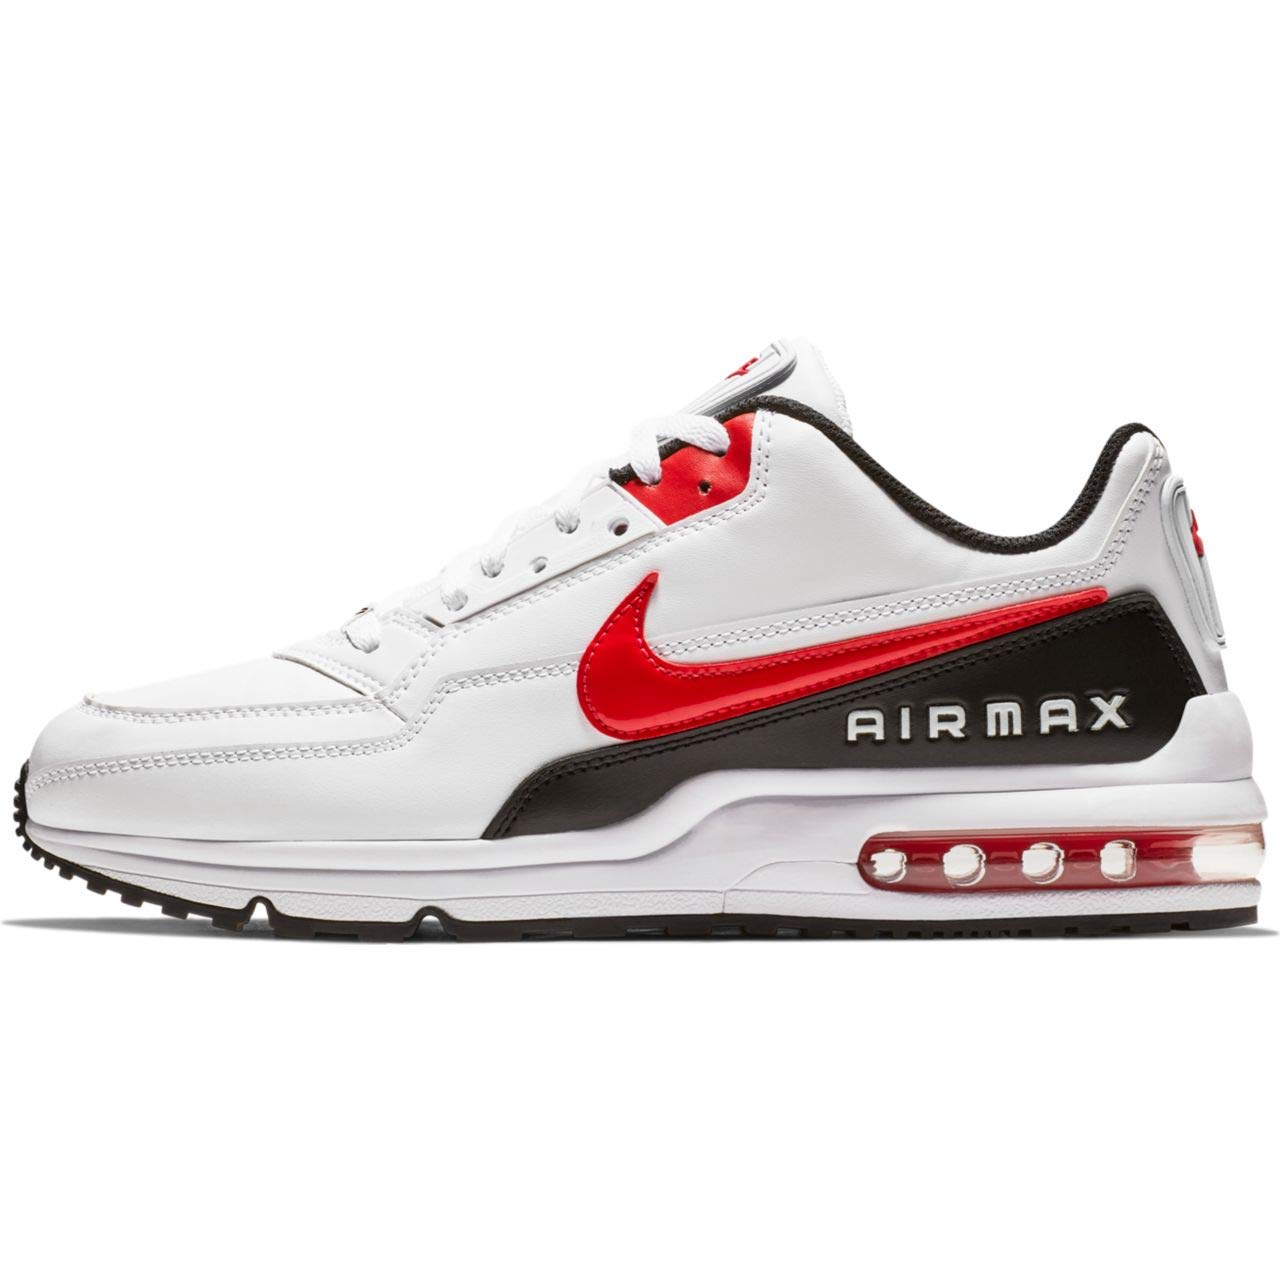 new style ac662 27145 Galleon - Nike Air Max LTD 3 Men's Shoes White/University Red/Black  Bv1171-100 (13 D(M) US)